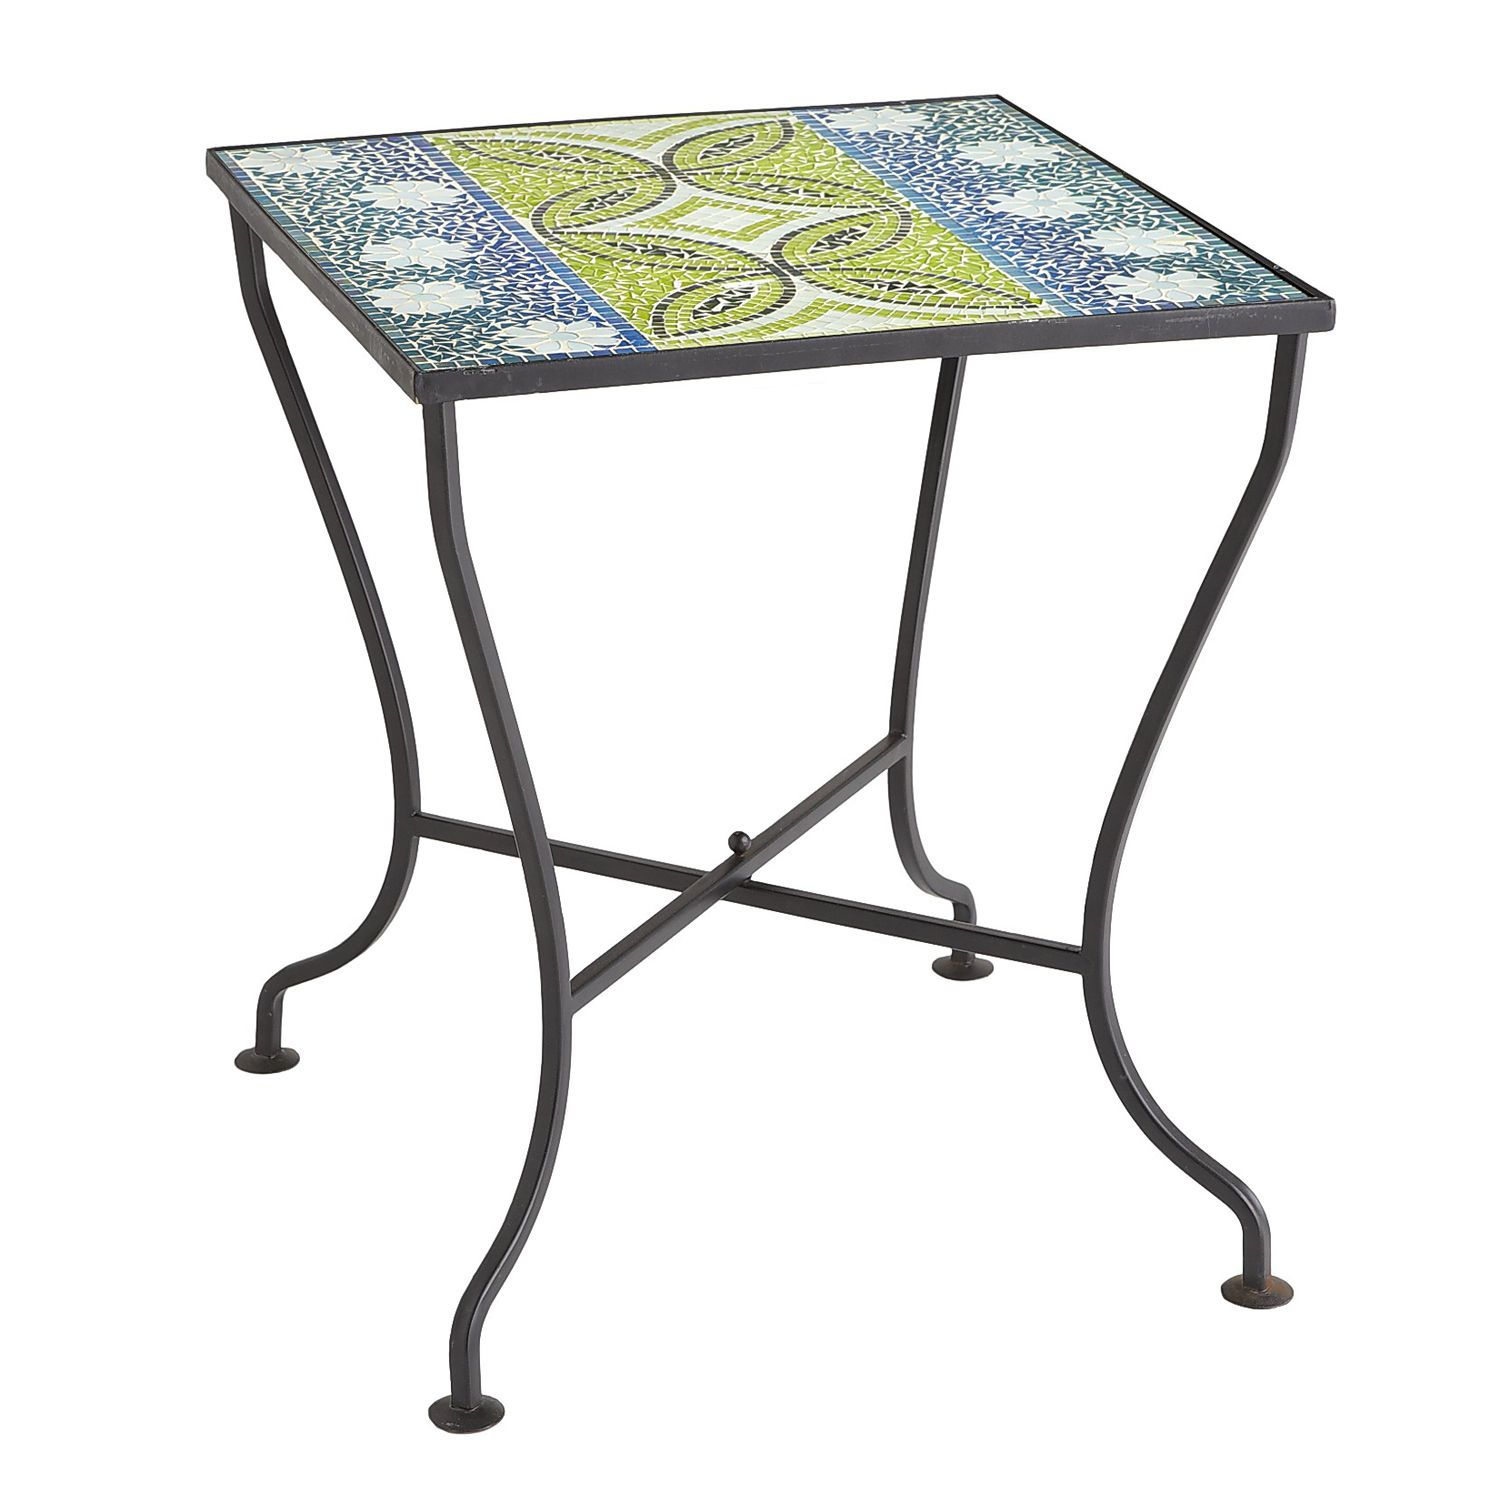 lani mosaic accent table pier imports patio outdoor tables side white metal end base west elm bistro corner for dining room dresser with mirror half entryway aurora furniture